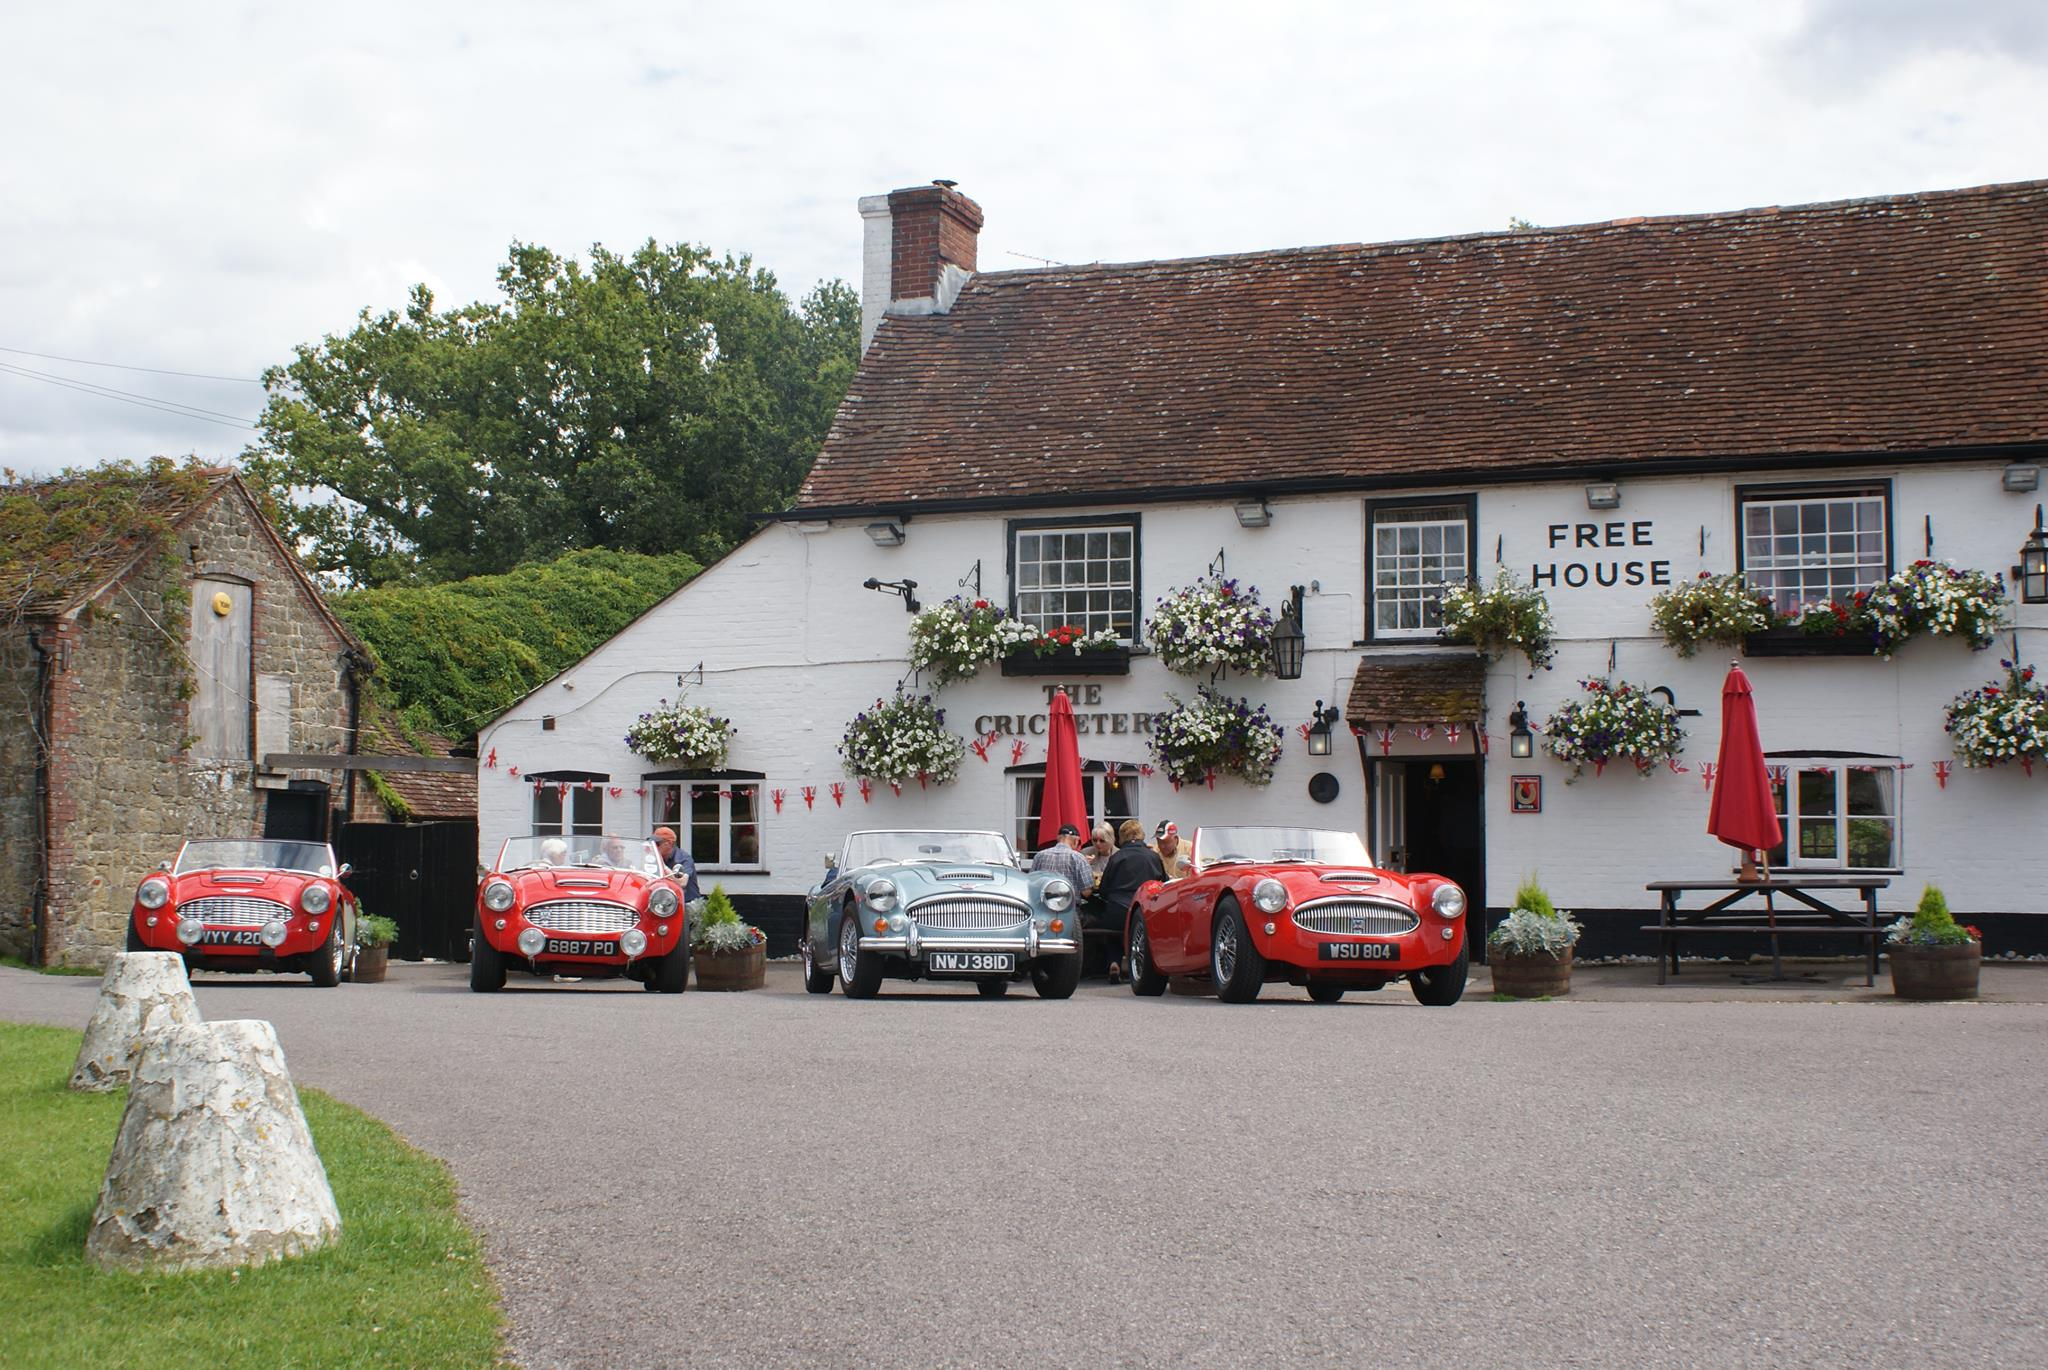 Quiz Night at Cricketers in Duncton